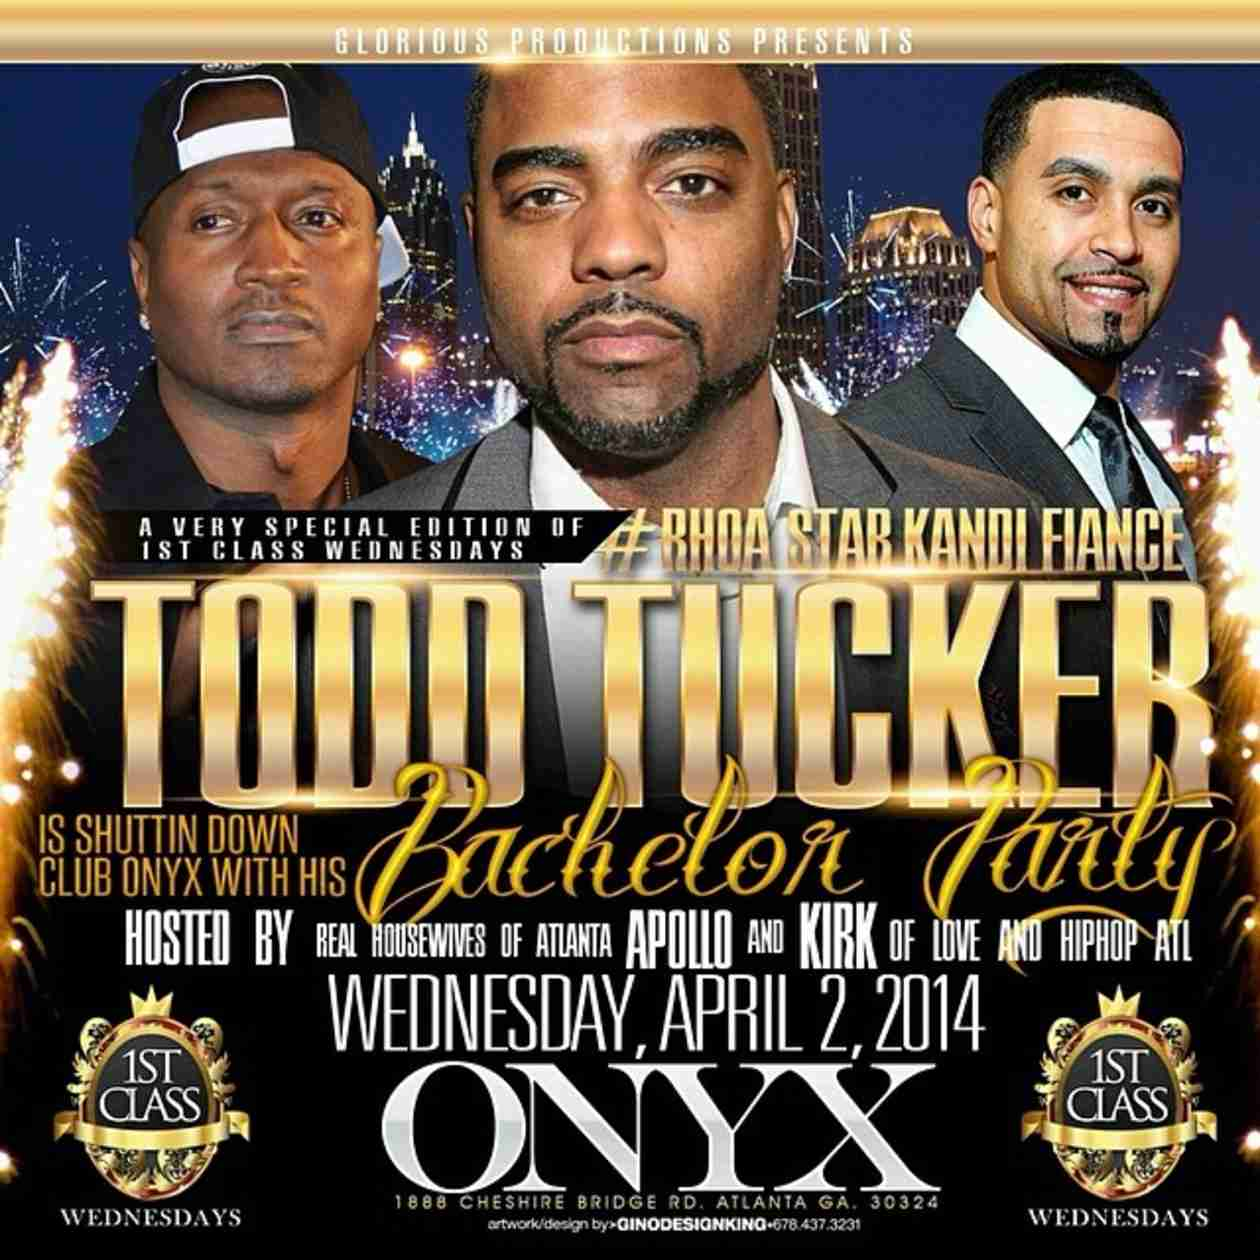 Todd Tucker to Throw Bachelor Party With Apollo Nida and Kirk Frost